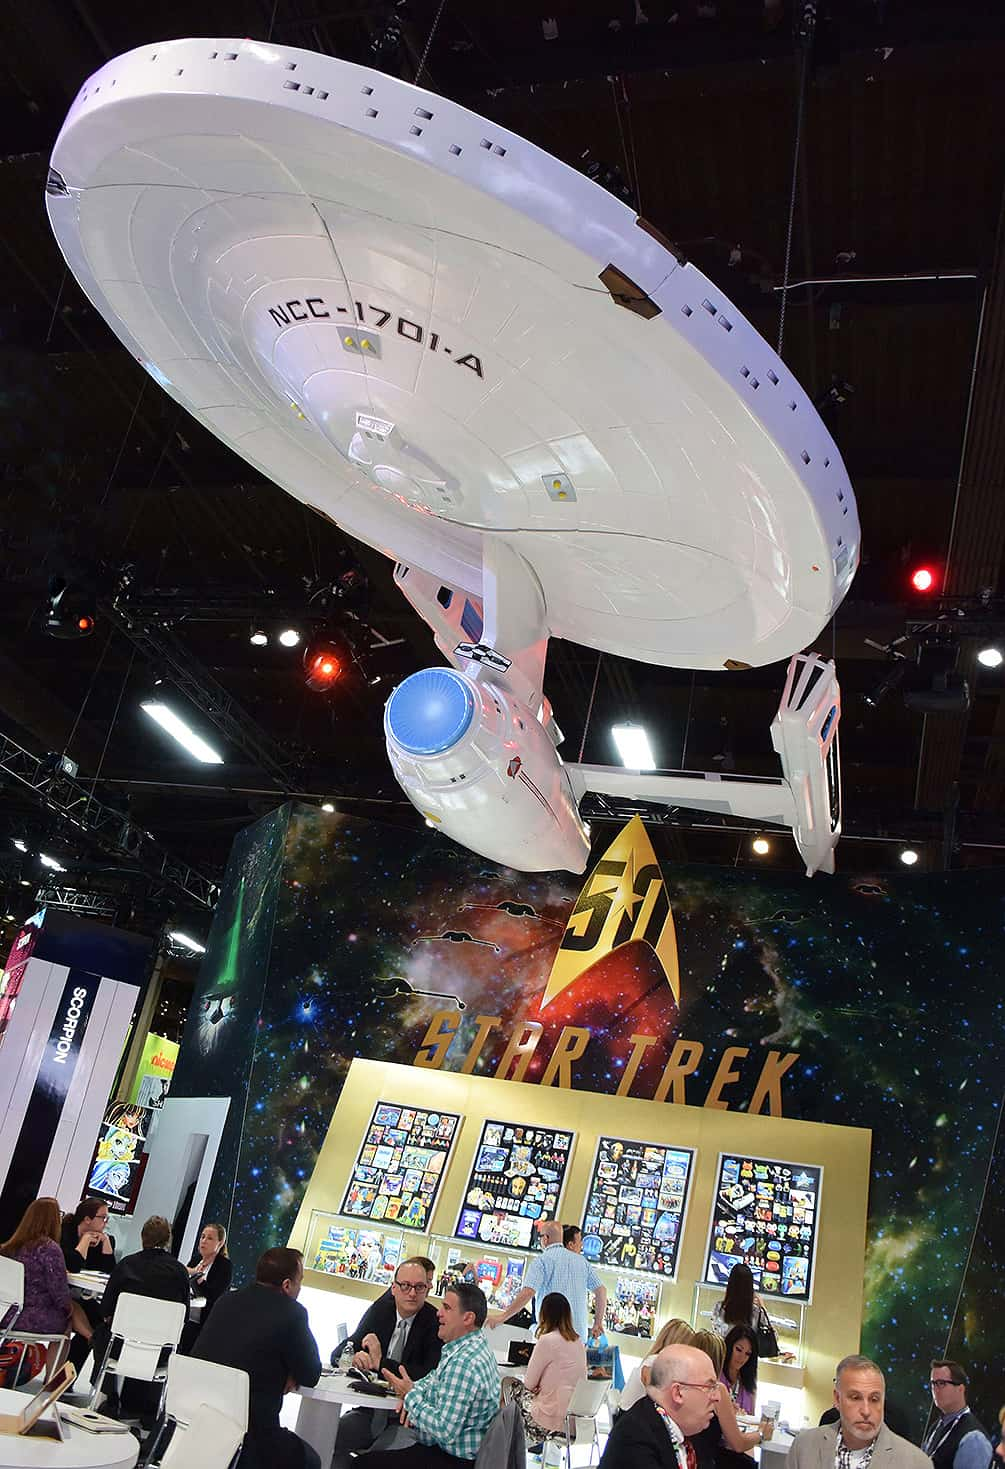 The Star Trek booth at the Licensing Expo